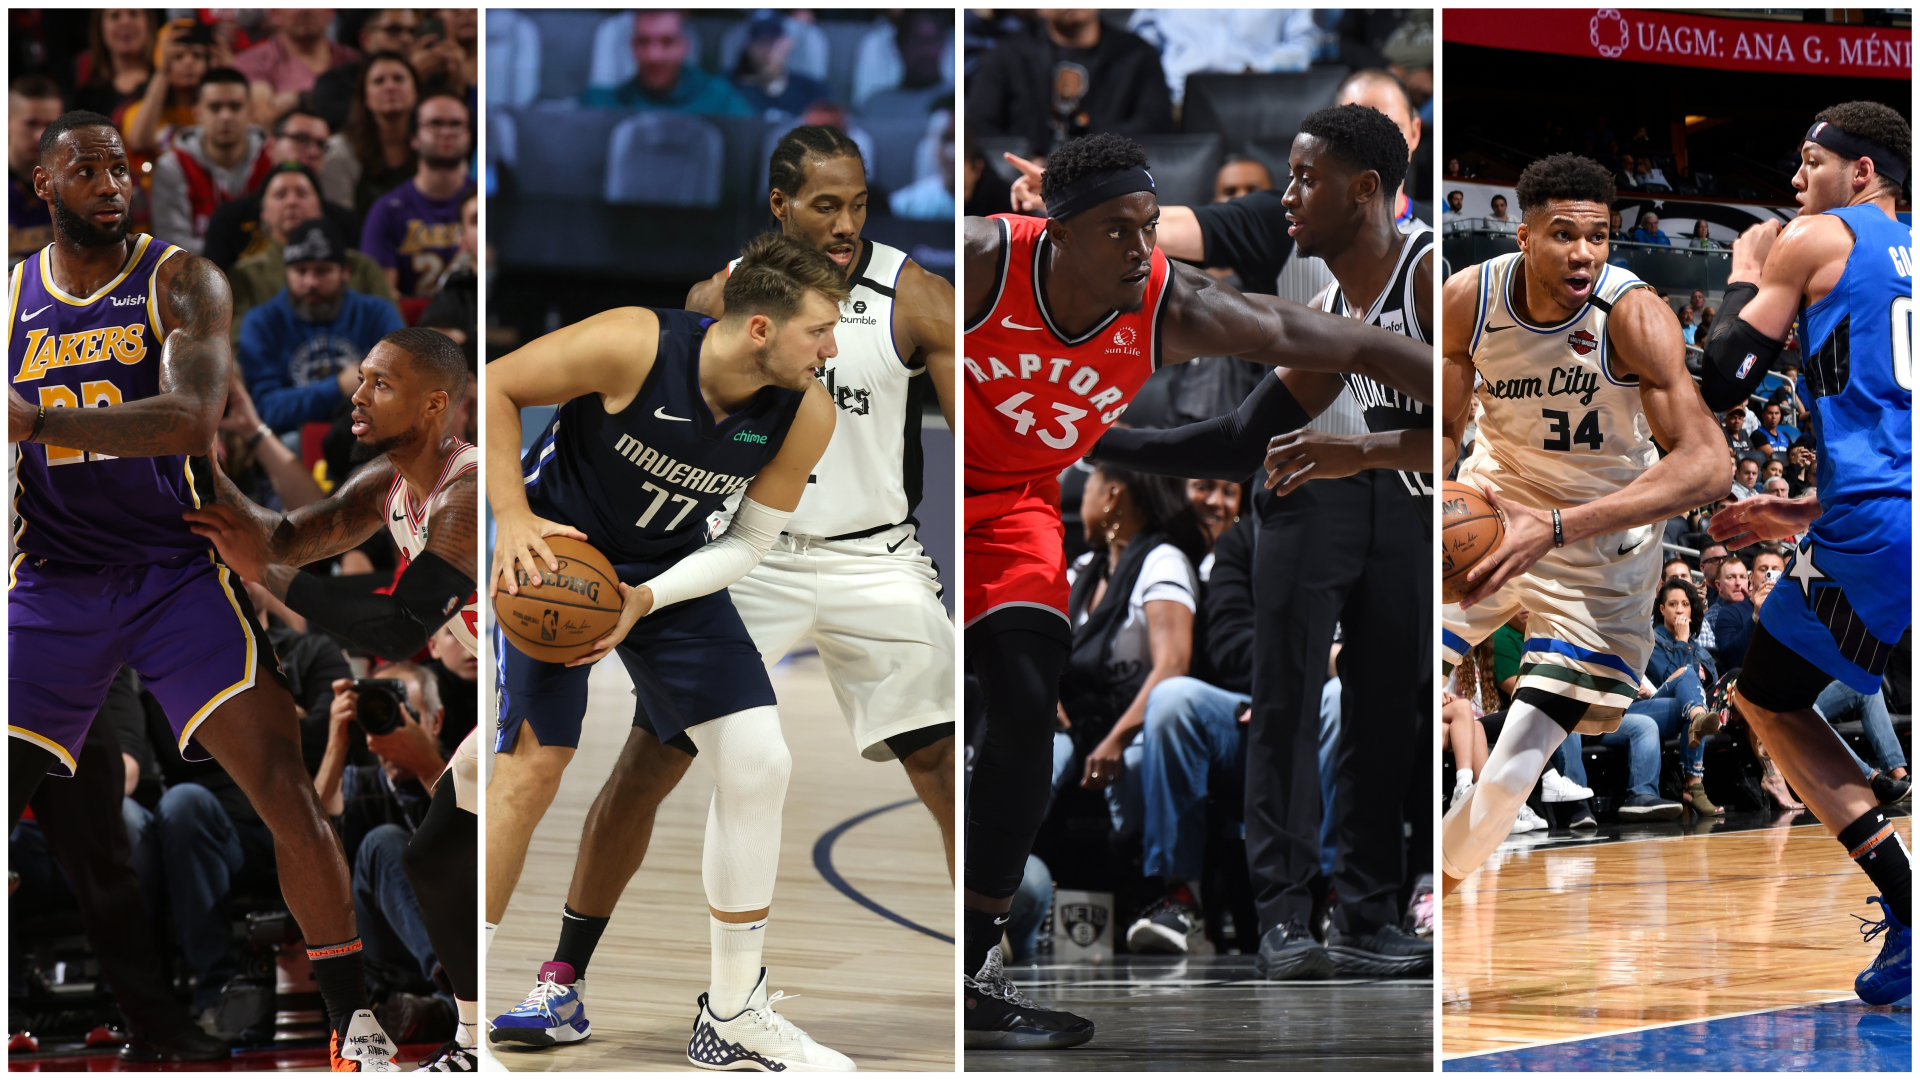 Nba Playoffs 2020 Previewing Each Series Of The First Round Nba Com India The Official Site Of The Nba